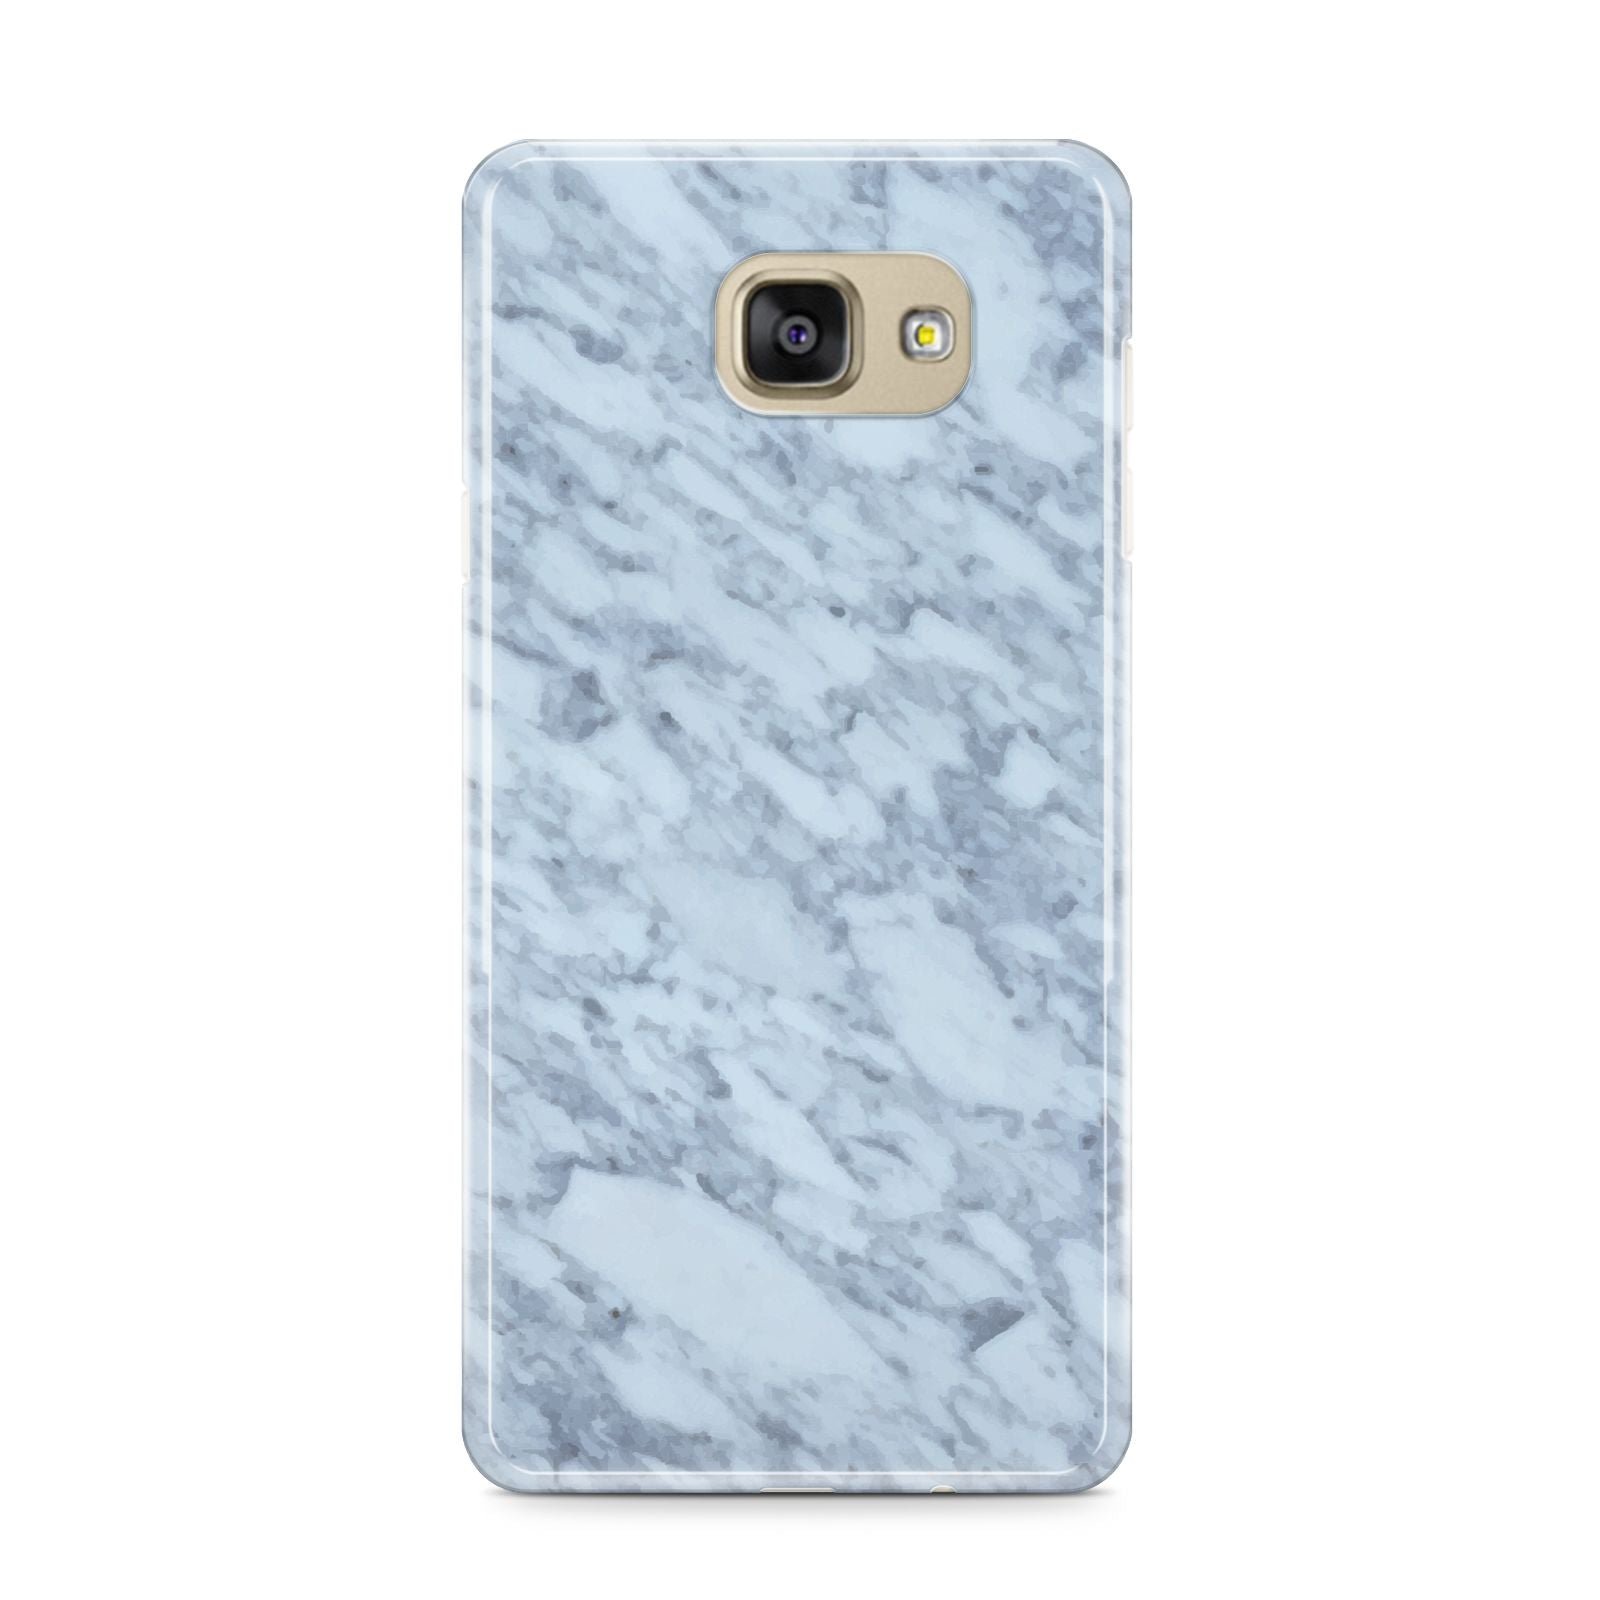 Faux Marble Grey 2 Samsung Galaxy A9 2016 Case on gold phone